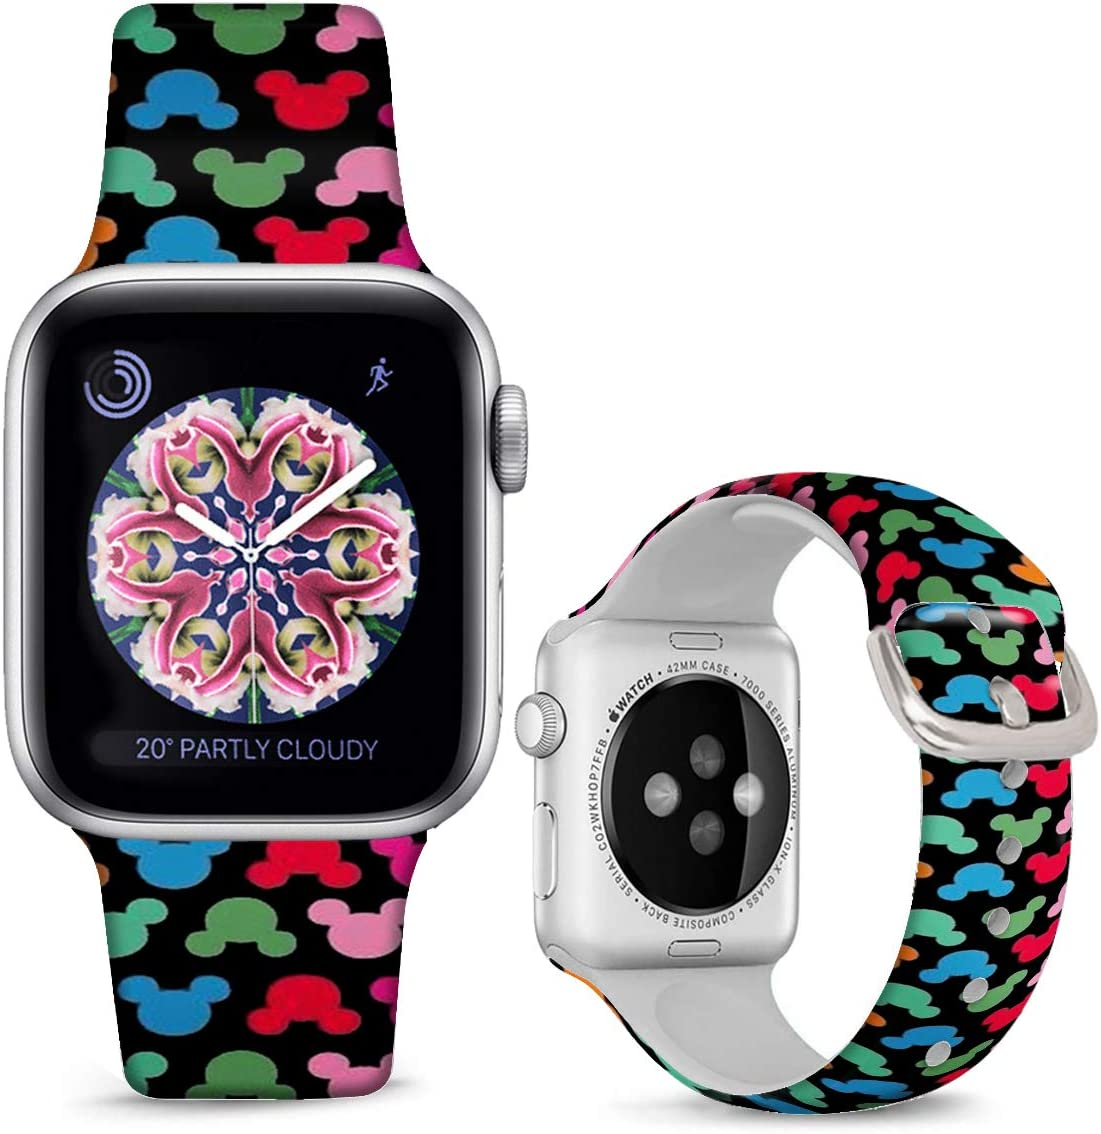 DOO UC Floral Bands Compatible with iWatch 38mm/42mm/40mm/44mm, Cartoon Images Silicone Fadeless Pattern Printed Replacement Bands for iWatch Series 4/3/2/1, M/L for Women/Men